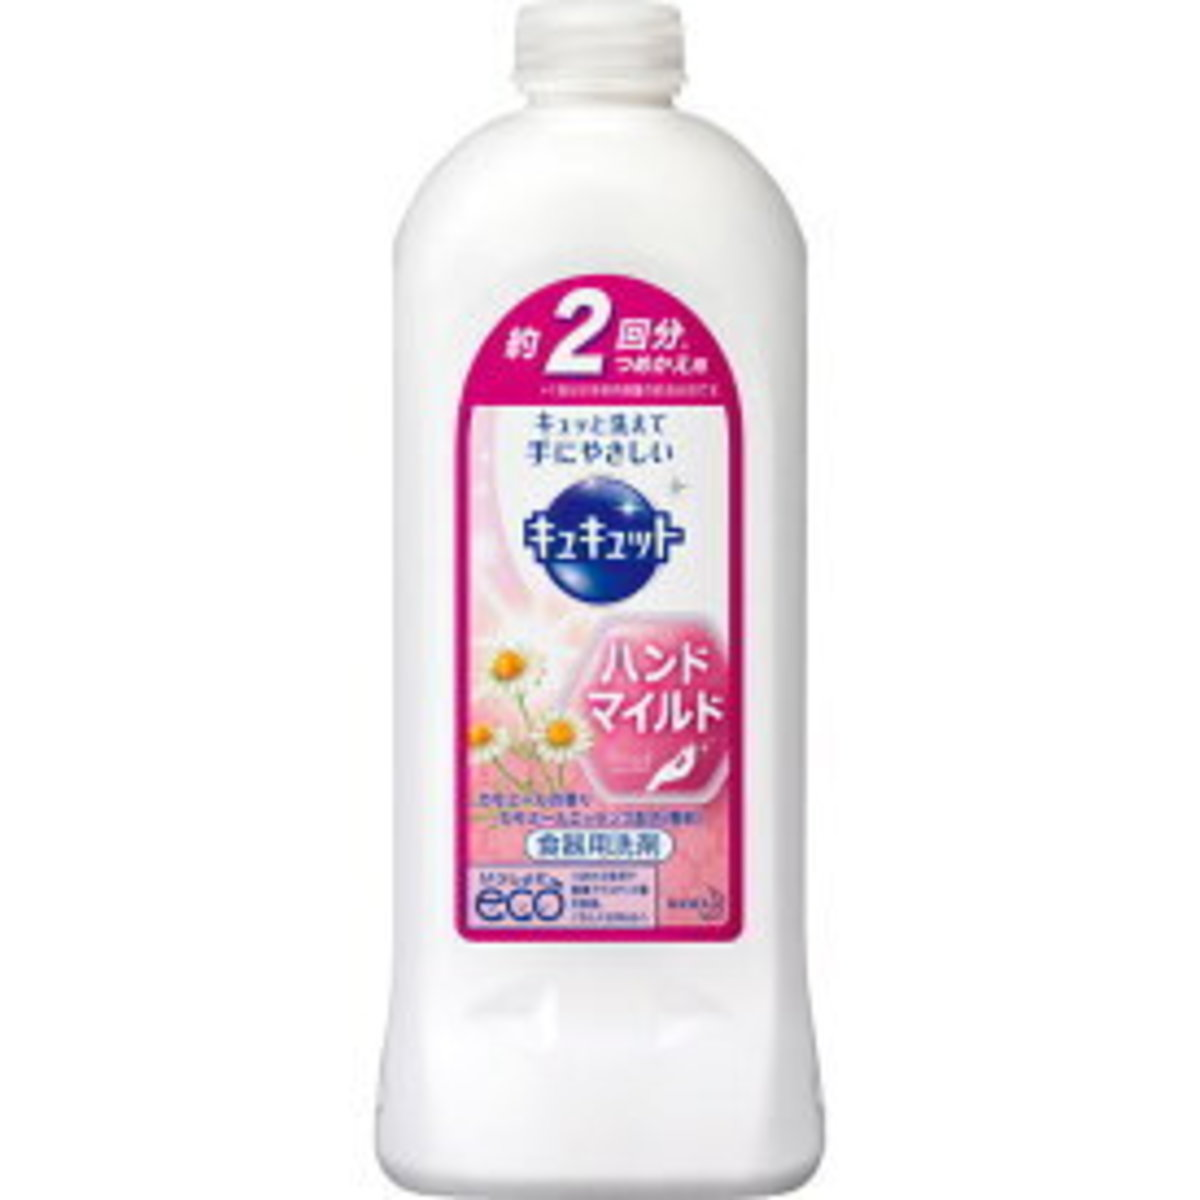 Cucute super-concentrated detergent sterilization guard (chamomile fragrance) 370ml supplement village